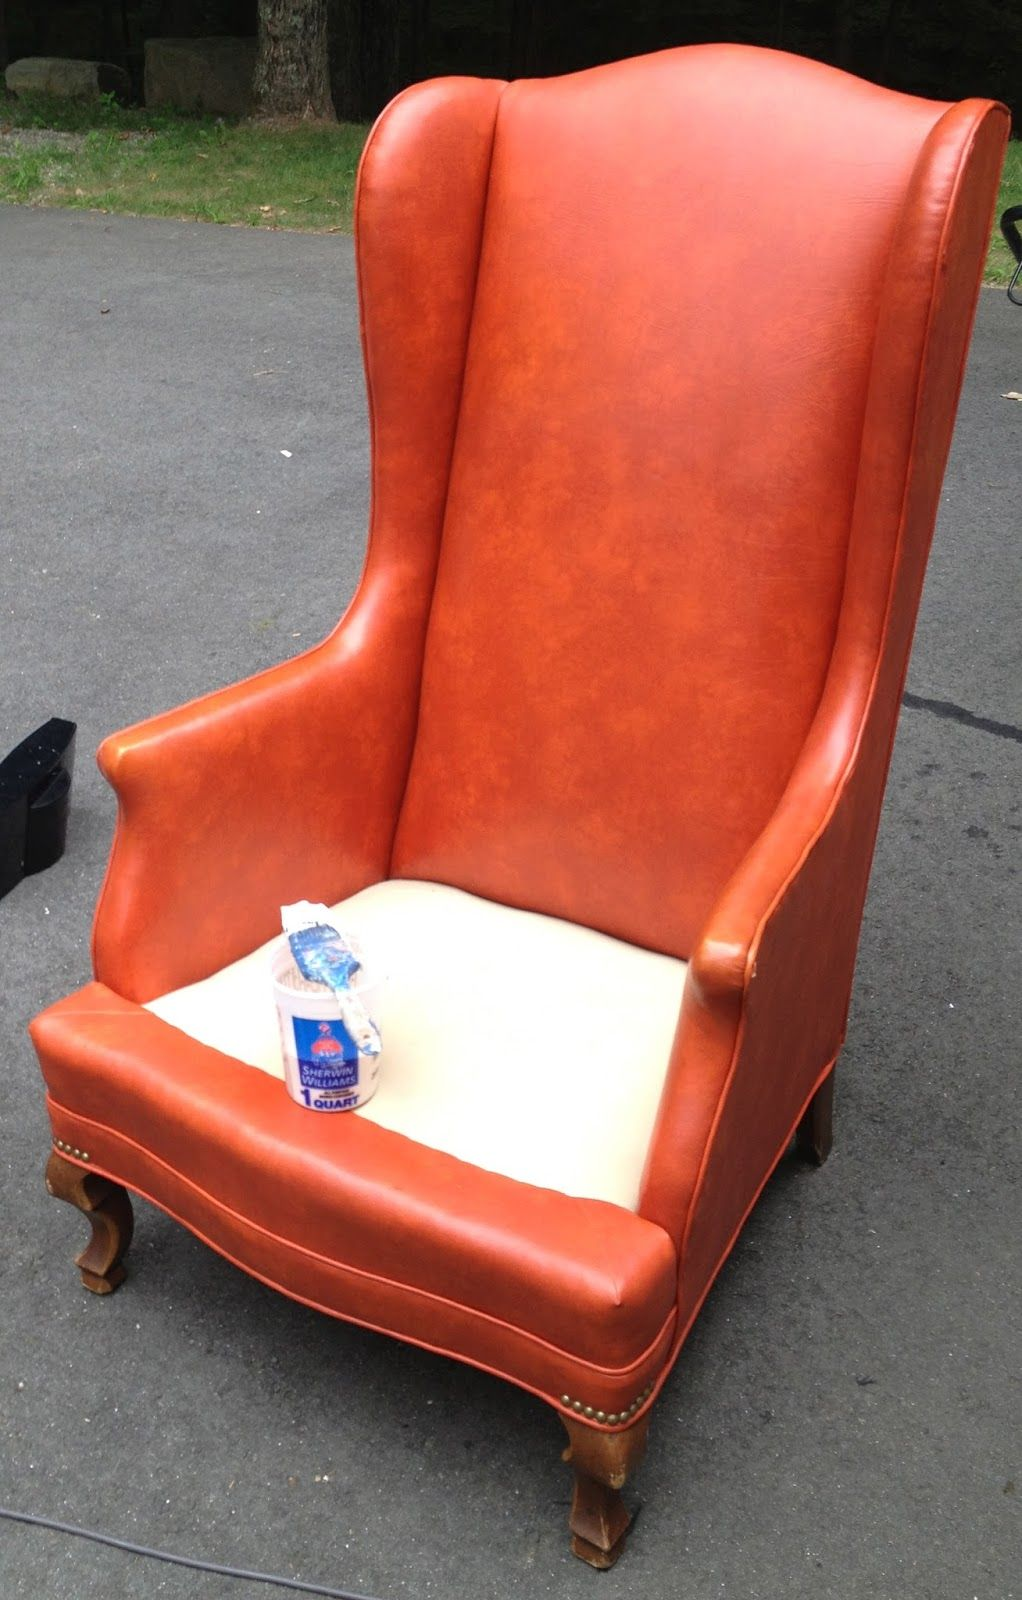 How to Rehab a Leather Chair Chair, Chair upholstery